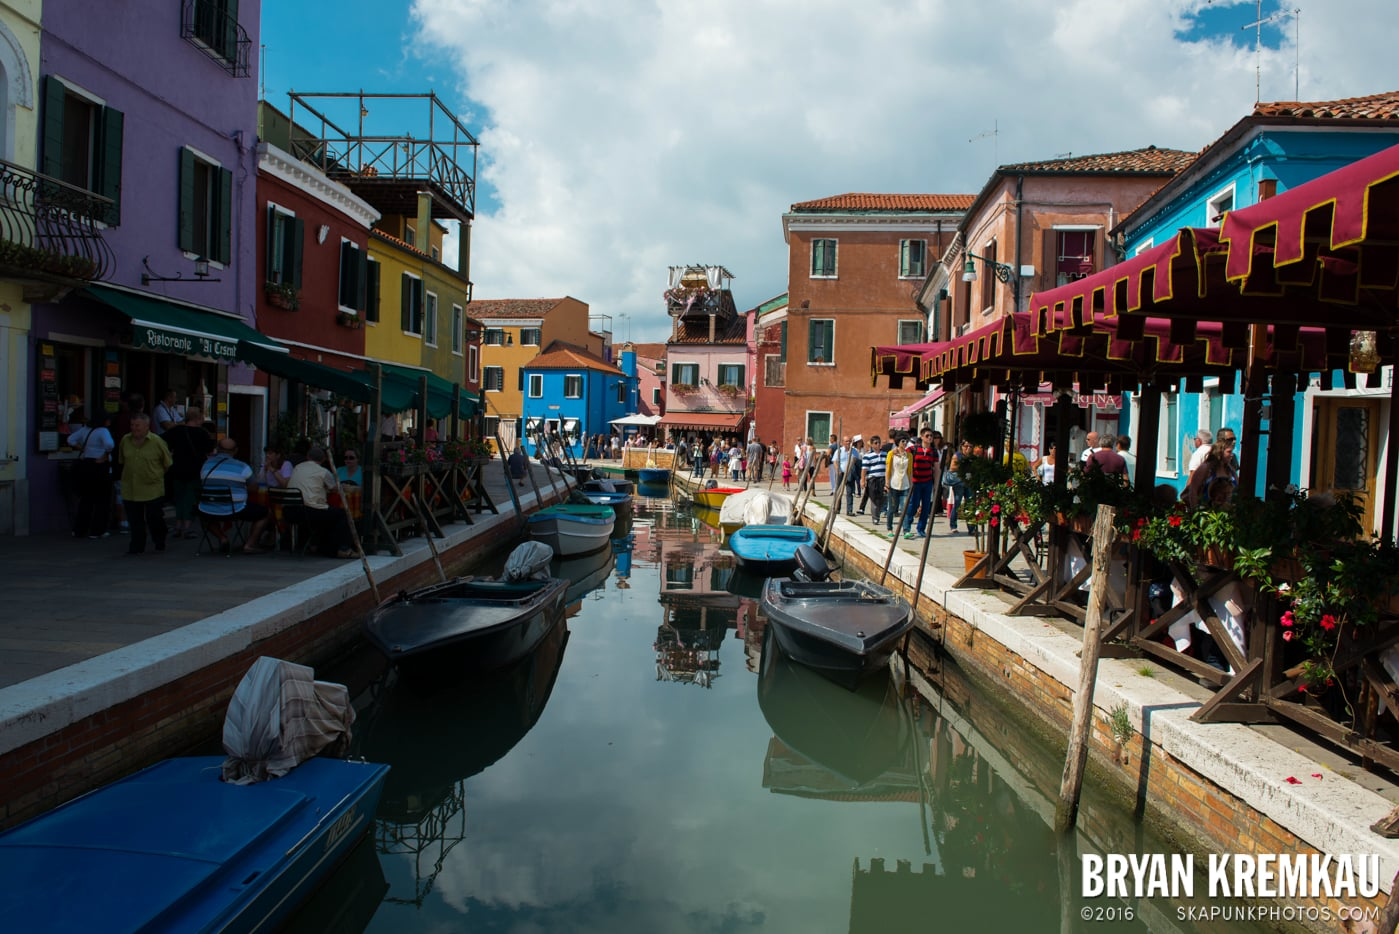 Italy Vacation - Day 6: Murano, Burano, Venice - 9.14.13 (68)